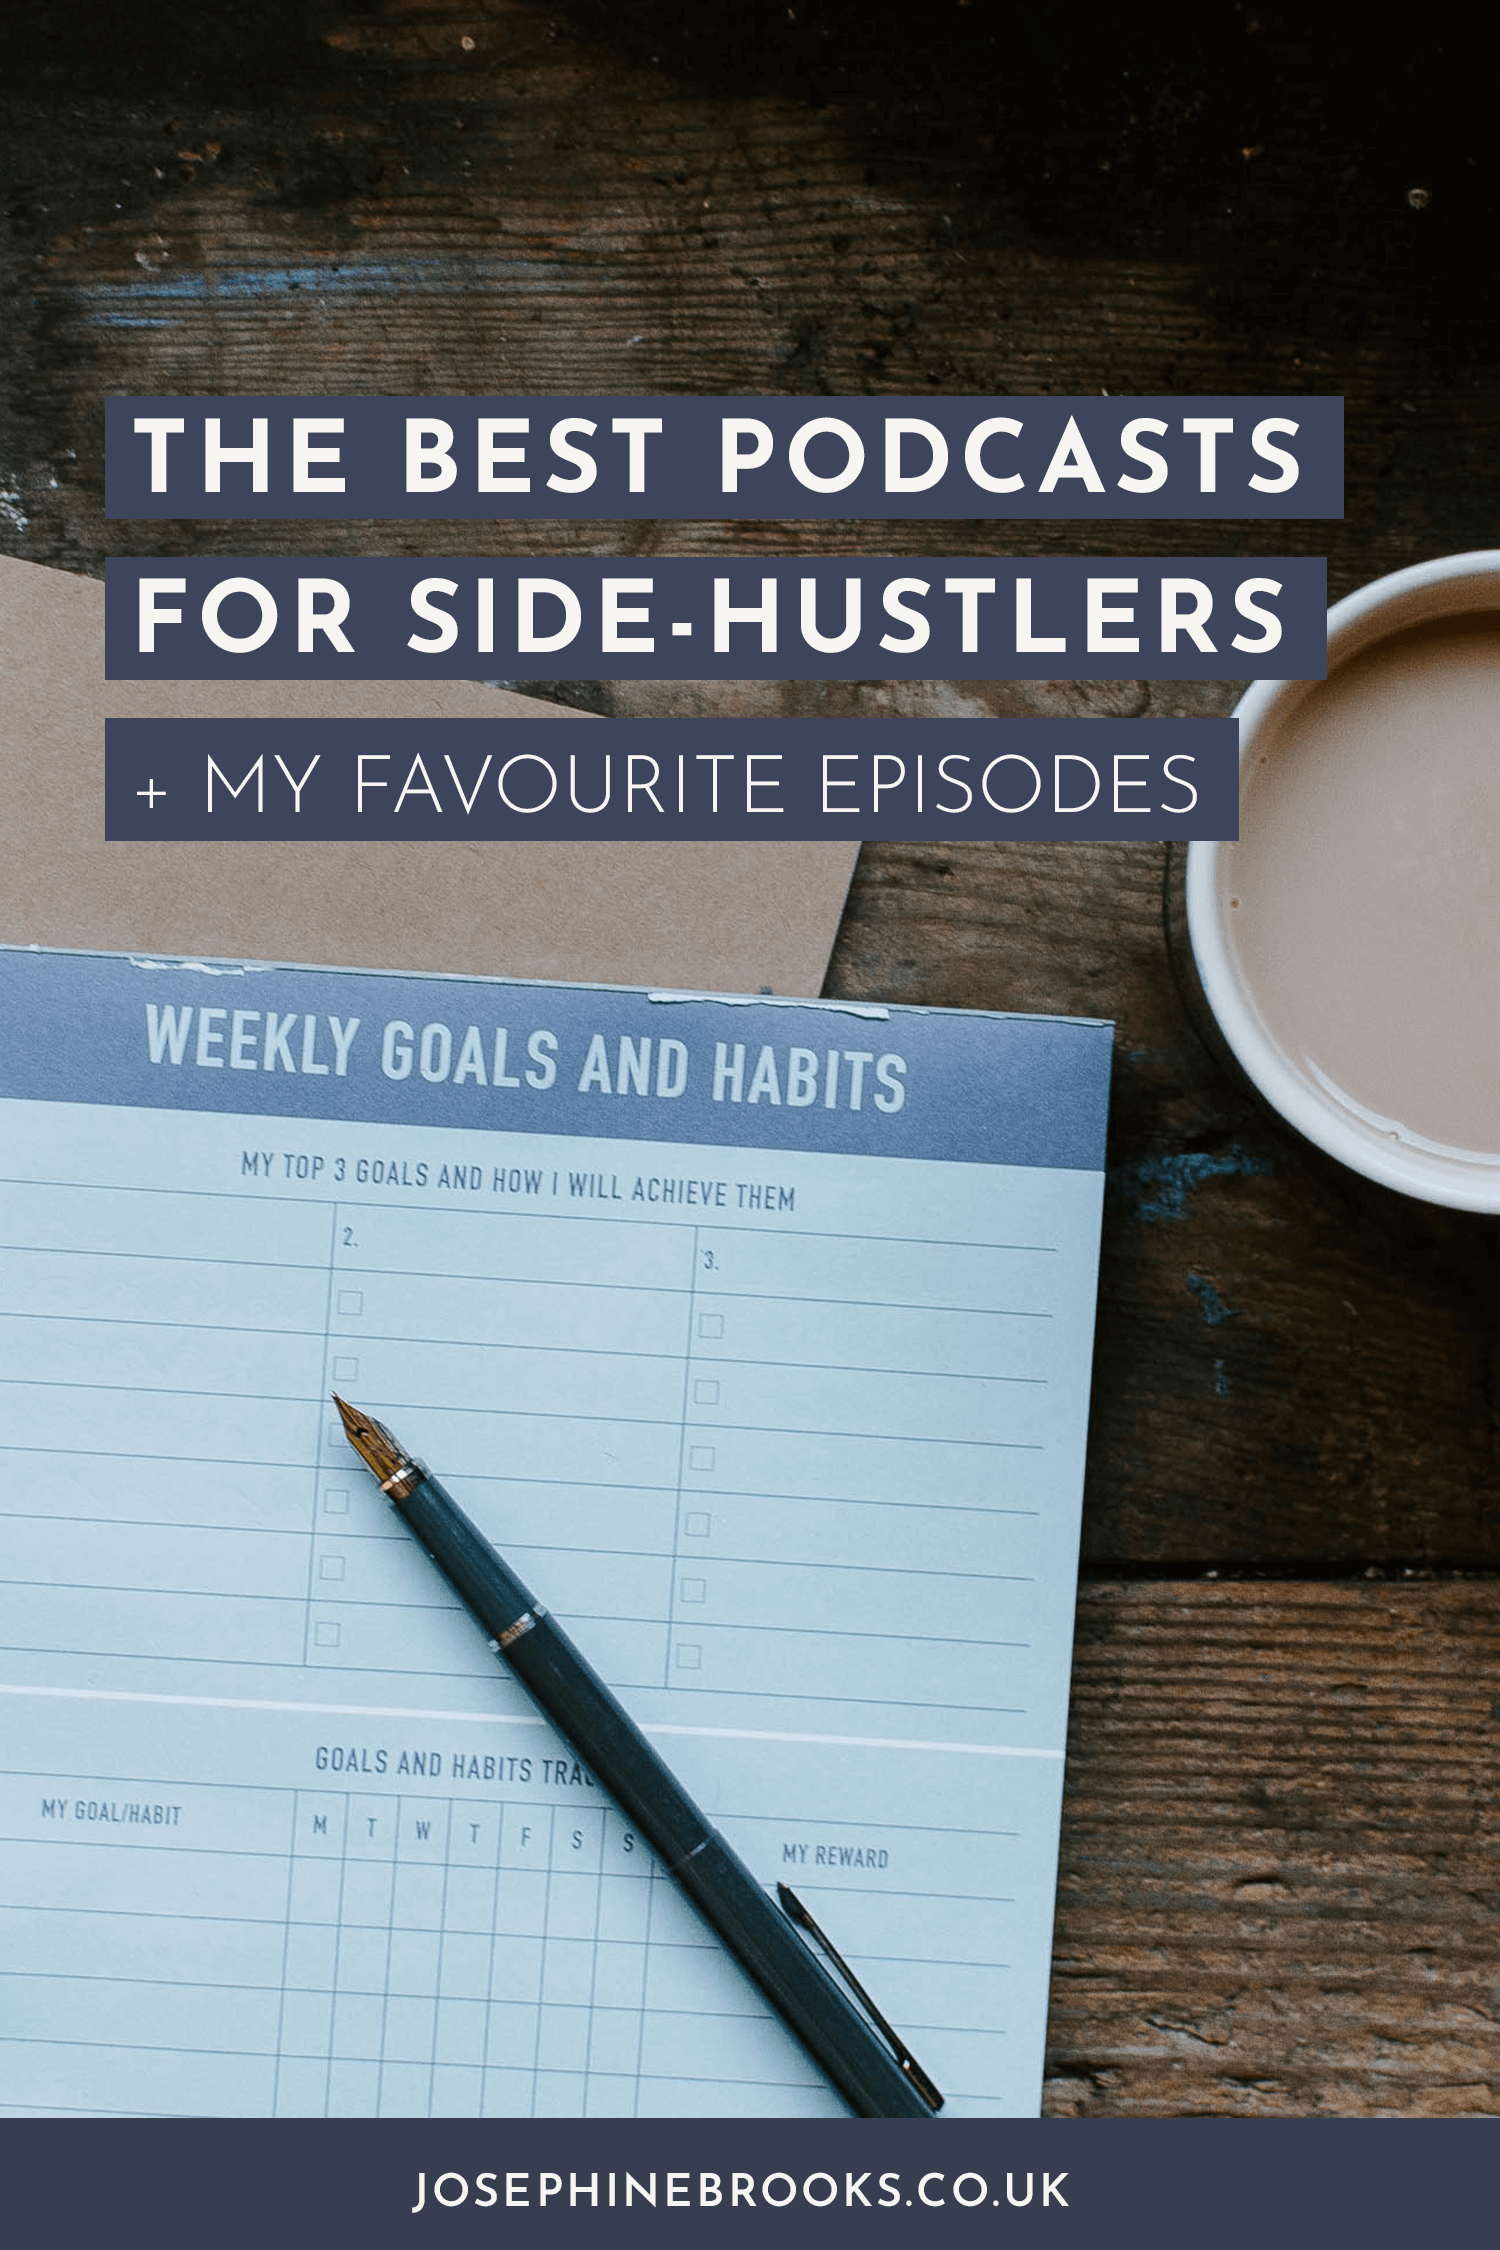 The best podcasts for side-hustlers and my favourite episodes yet